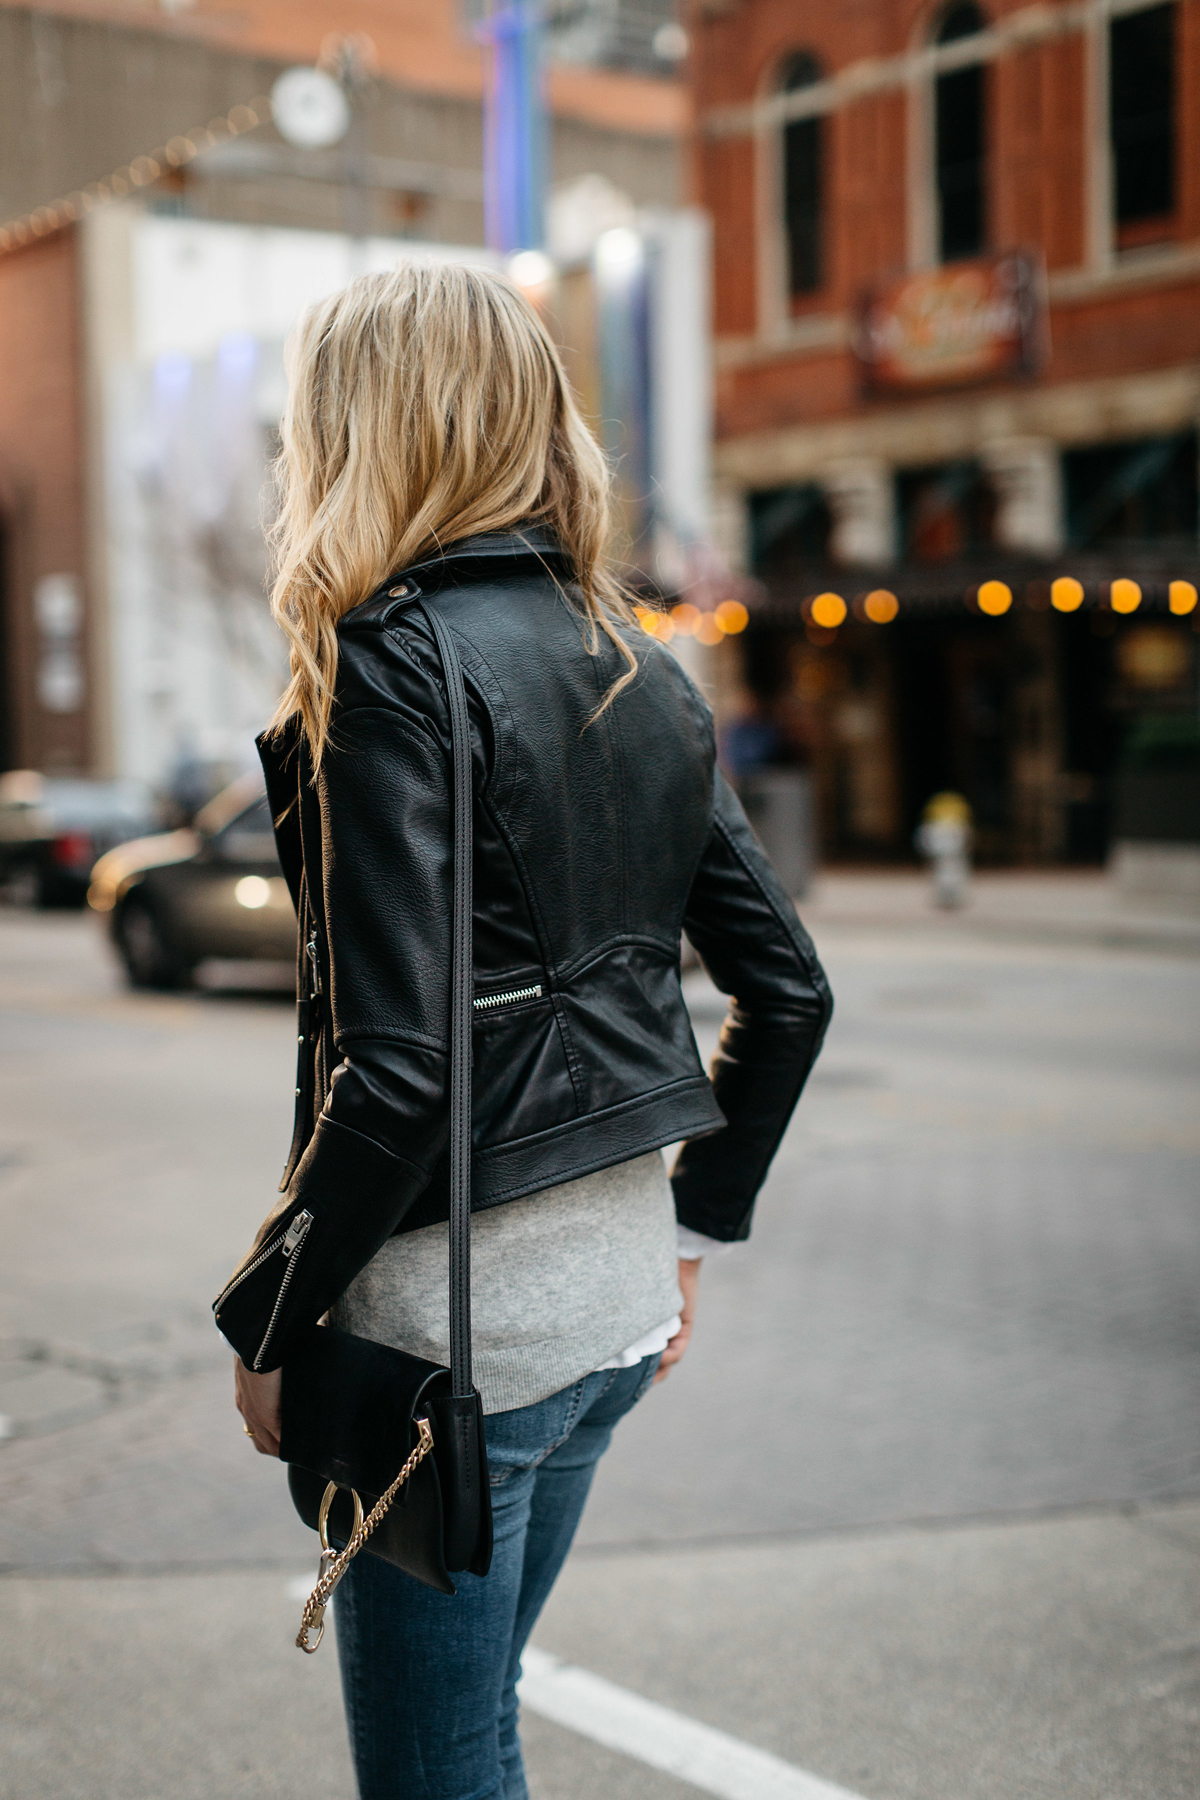 Fall Outfit, Winter Outfit, Black Leather Jacket, Grey Sweater, White Button-Down Shirt, Denim Ripped Skinny Jeans, Chloe Faye Handbag